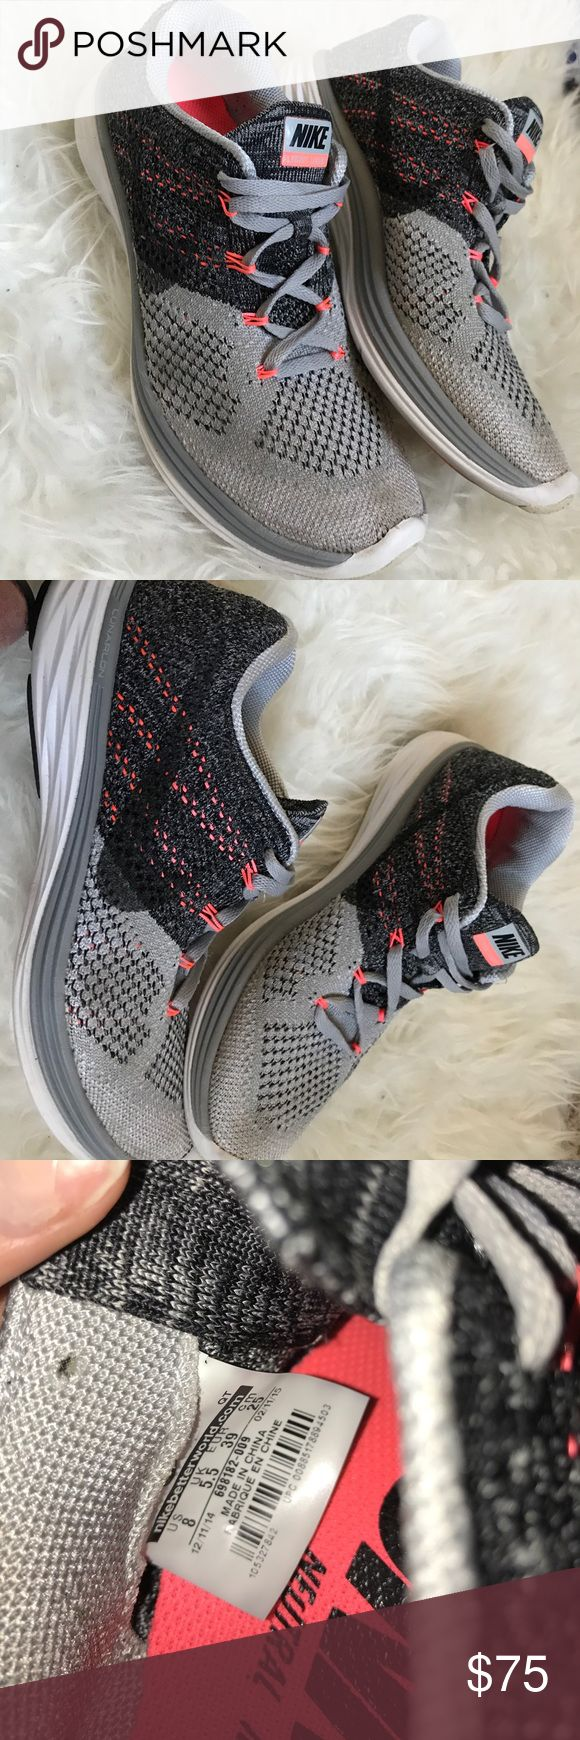 Nike Lunar 3 Nike lunar flynit 3 super comfortable!! I listed them as 7.5 because even though they are technically an 8 they fit a 7.5 much better. In great condition Nike Shoes Sneakers